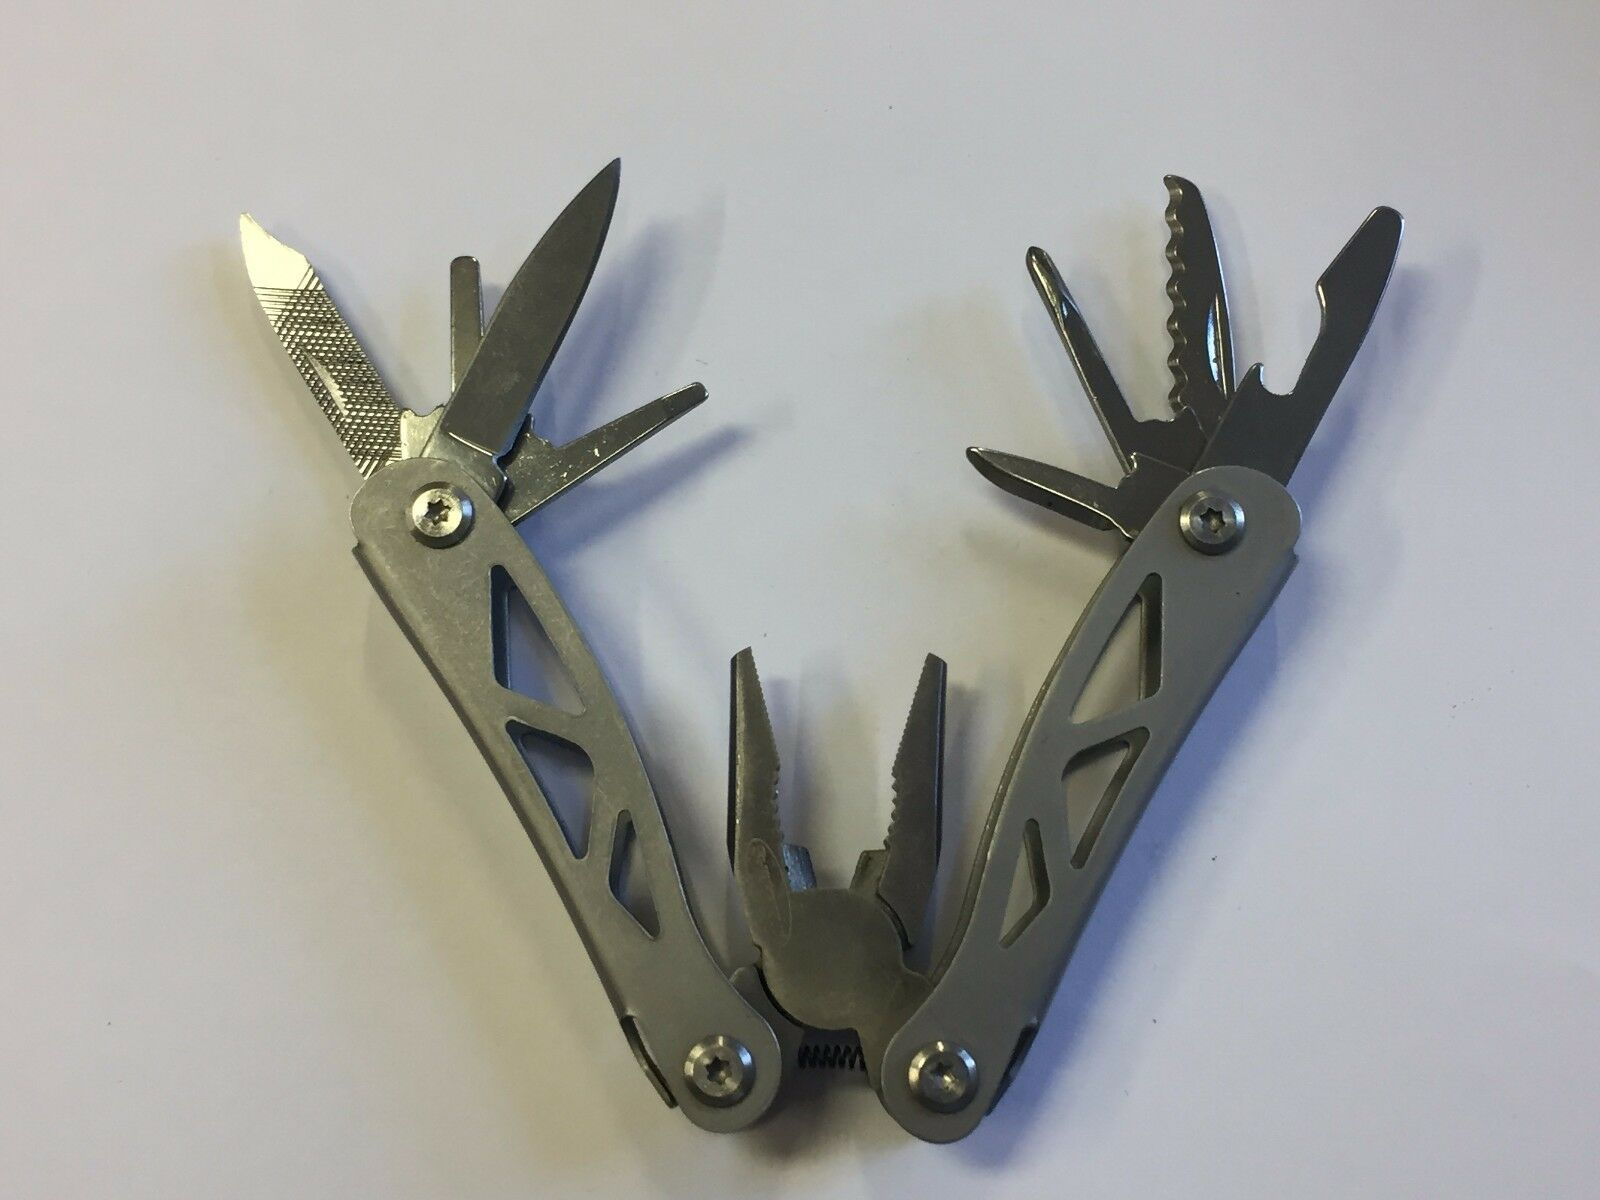 ALL METAL MULTI-TOOL SHEFFIELD POCKET KNIFE WITH PLIERS